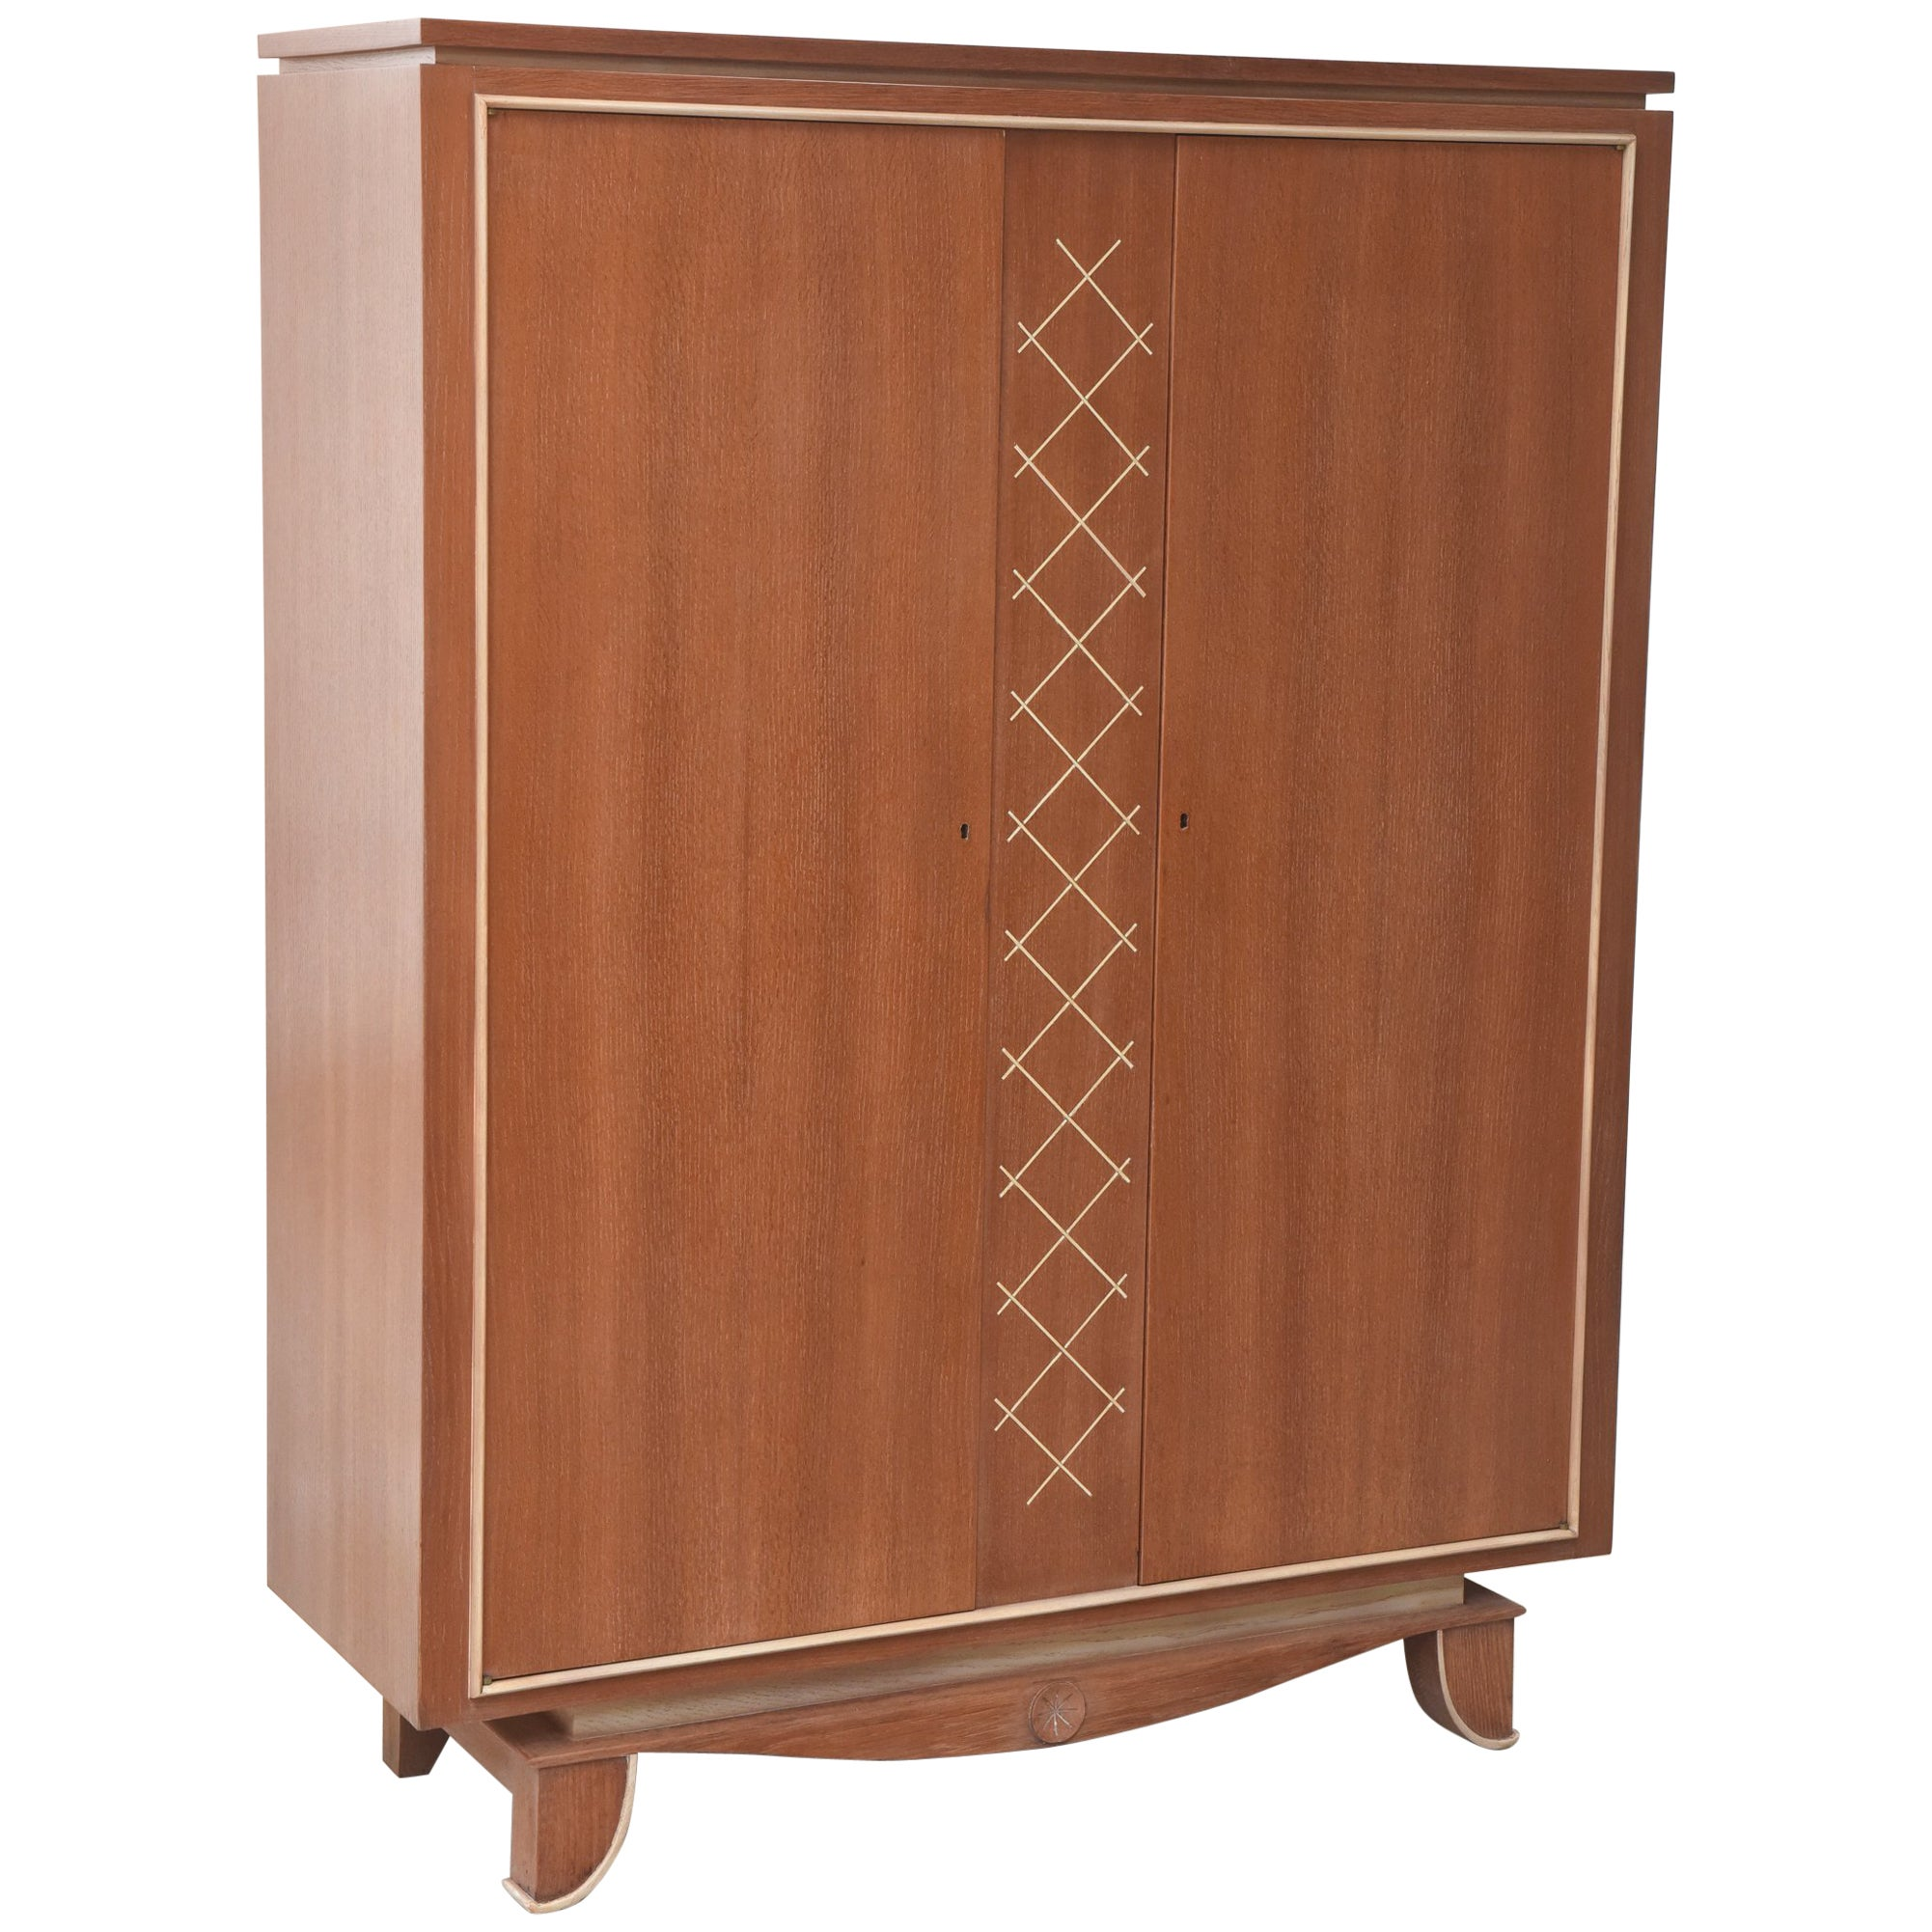 Pierre Petit French Modern Limed Oak and Parchment Tall Cabinet